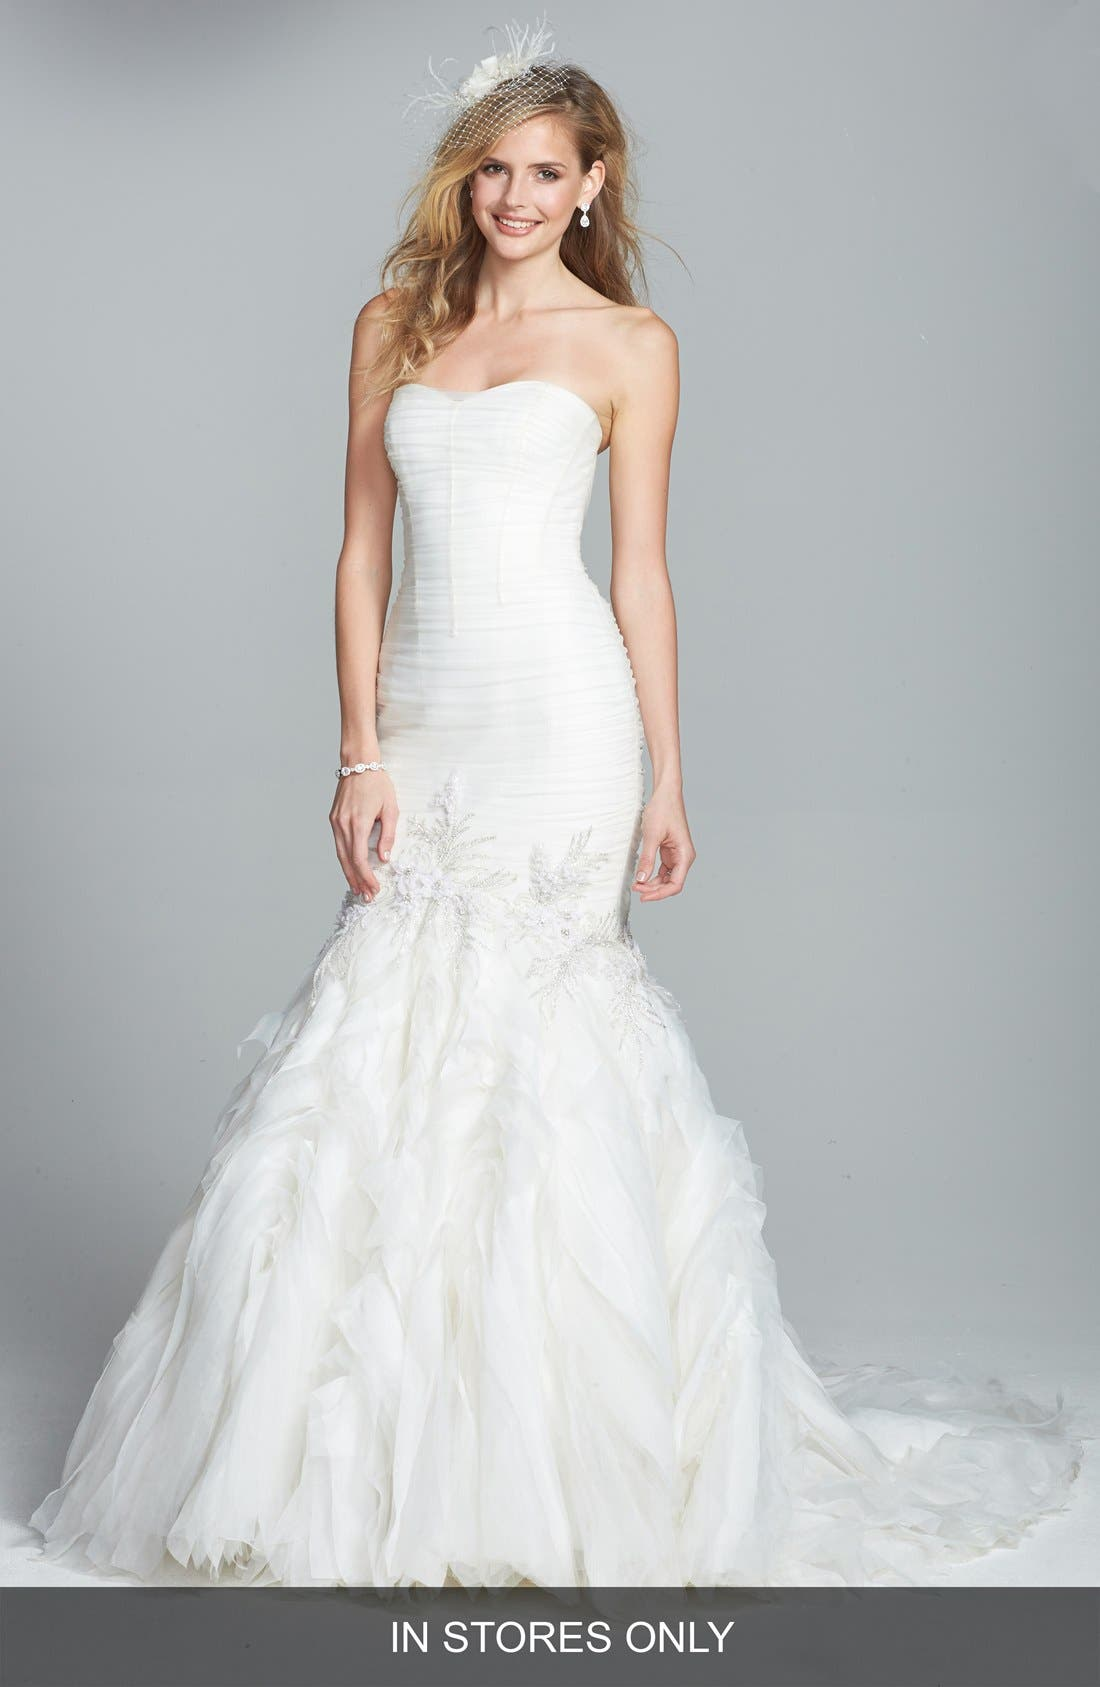 Main Image - Badgley Mischka Bridal 'Bridgette' Embellished Tulle Mermaid Dress (In Stores Only)